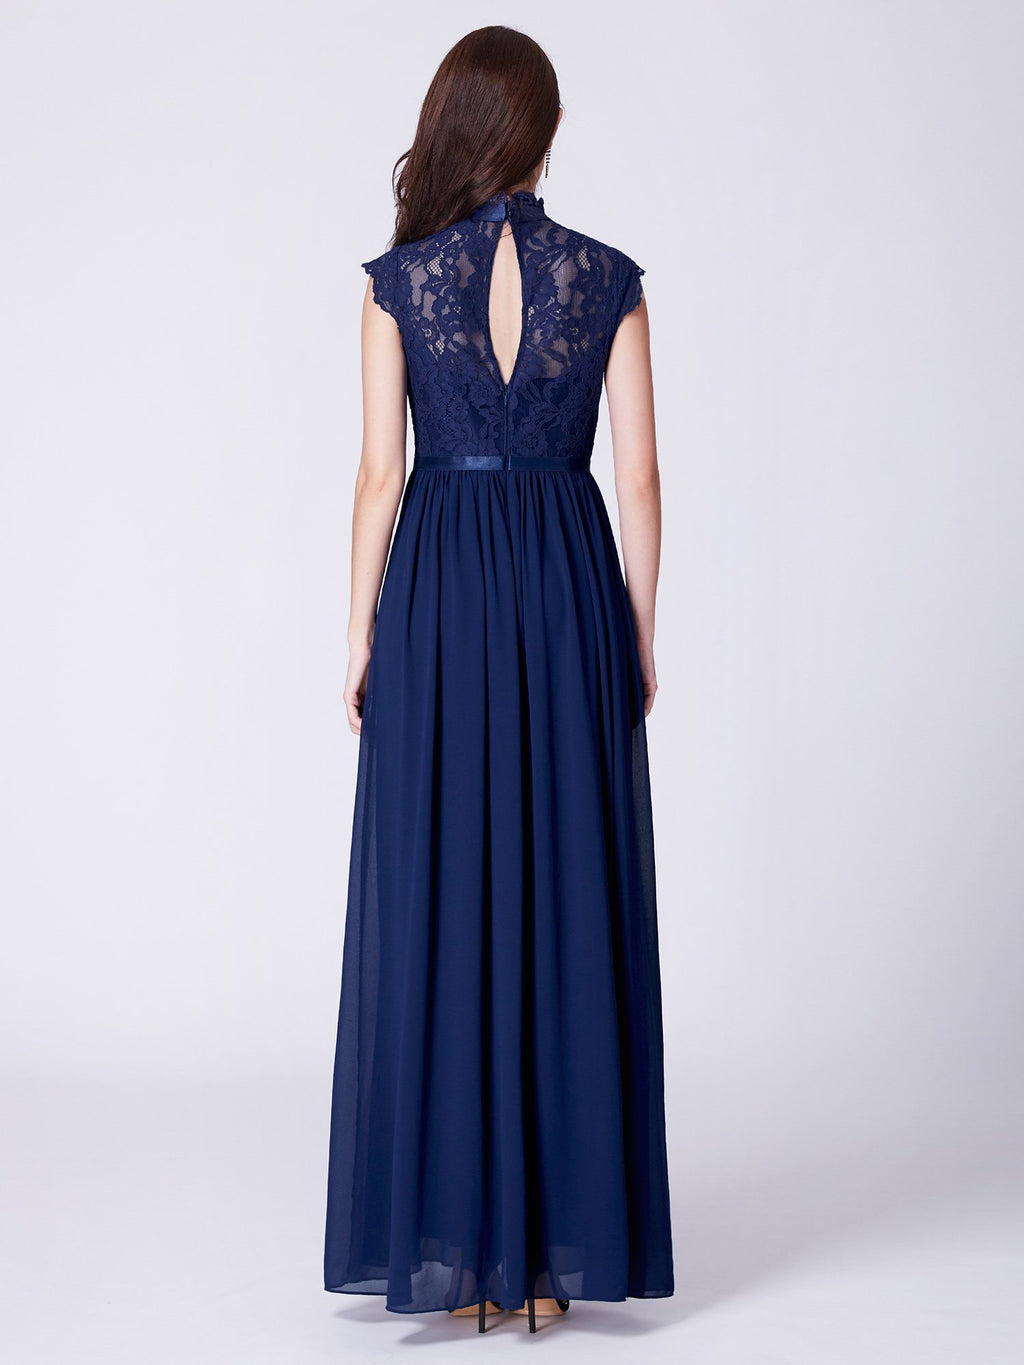 Long Resplendent Evening Dress Navy Blue